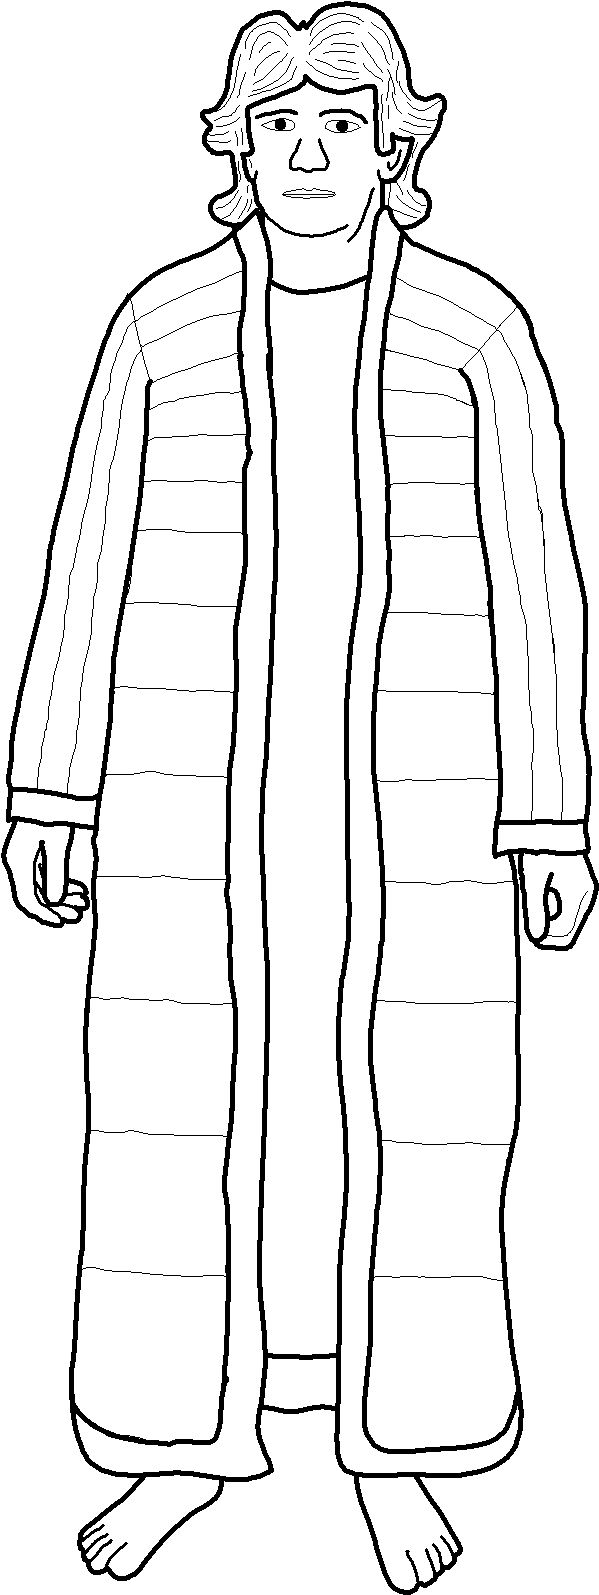 Printable coloring pages joseph coat - Joseph Sold To Slavery Lesson And Activities At Http Www Sundayschoolresources